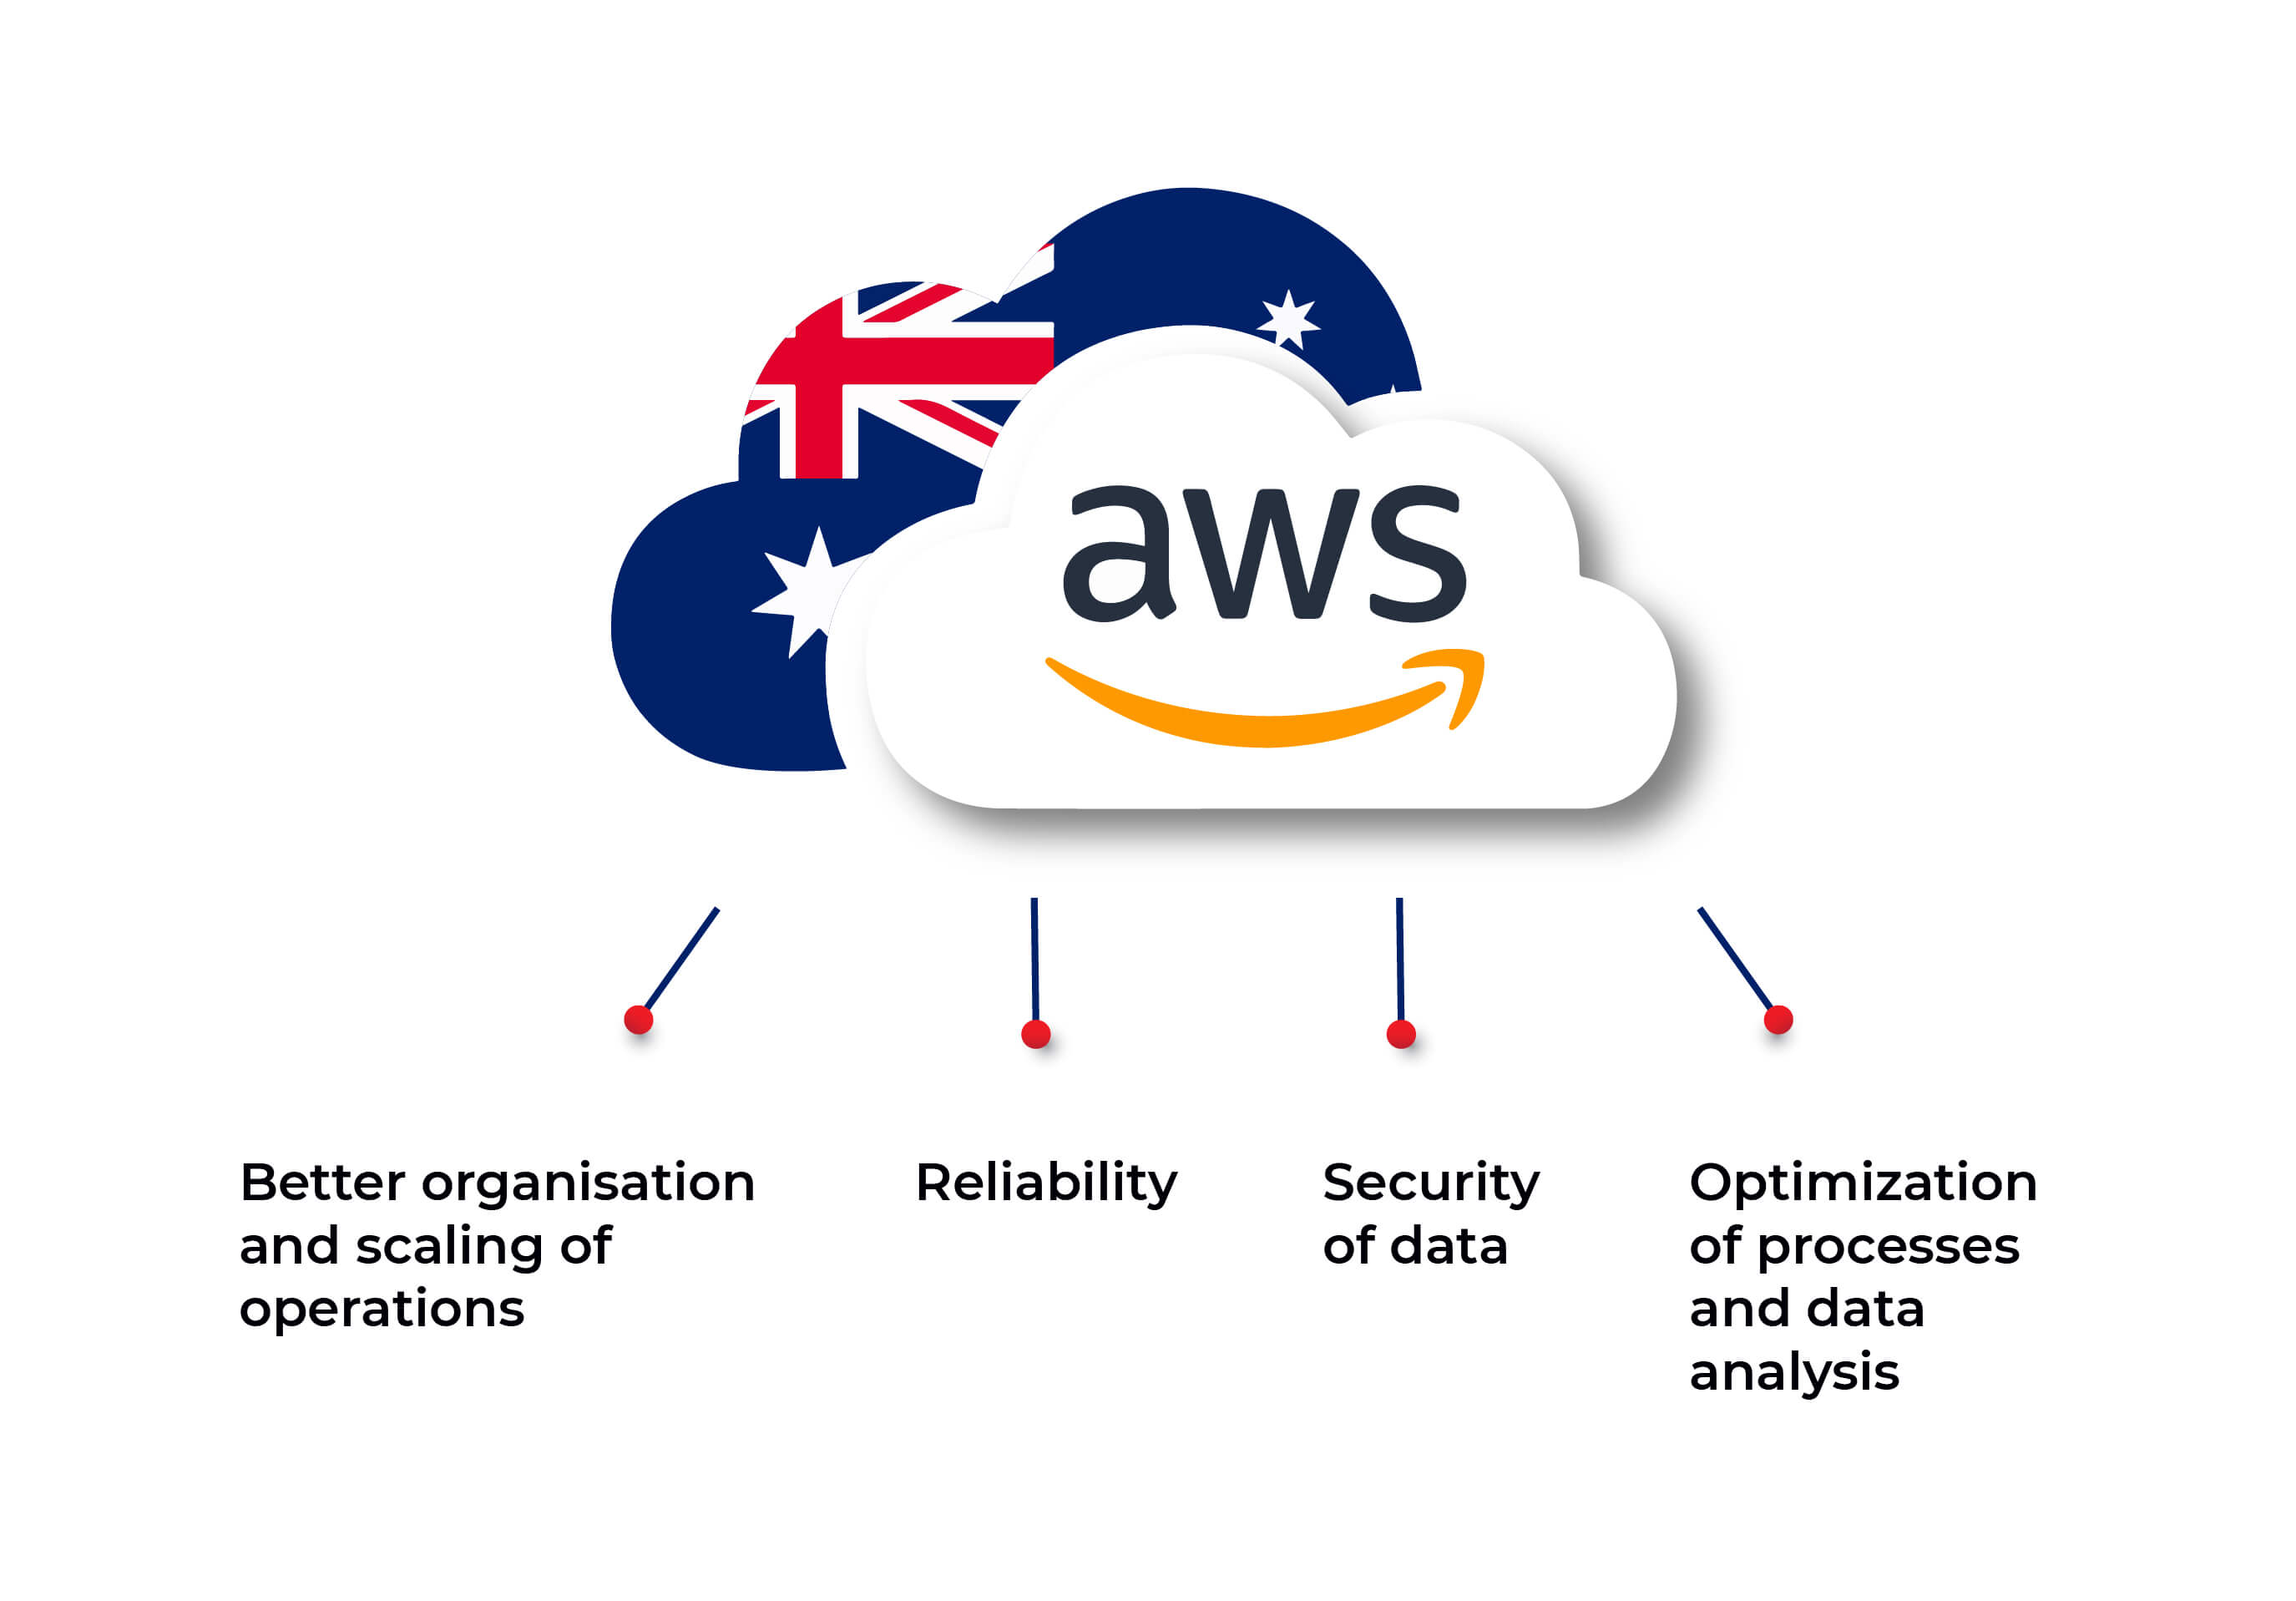 aws government cloud in Australia_1.jpg